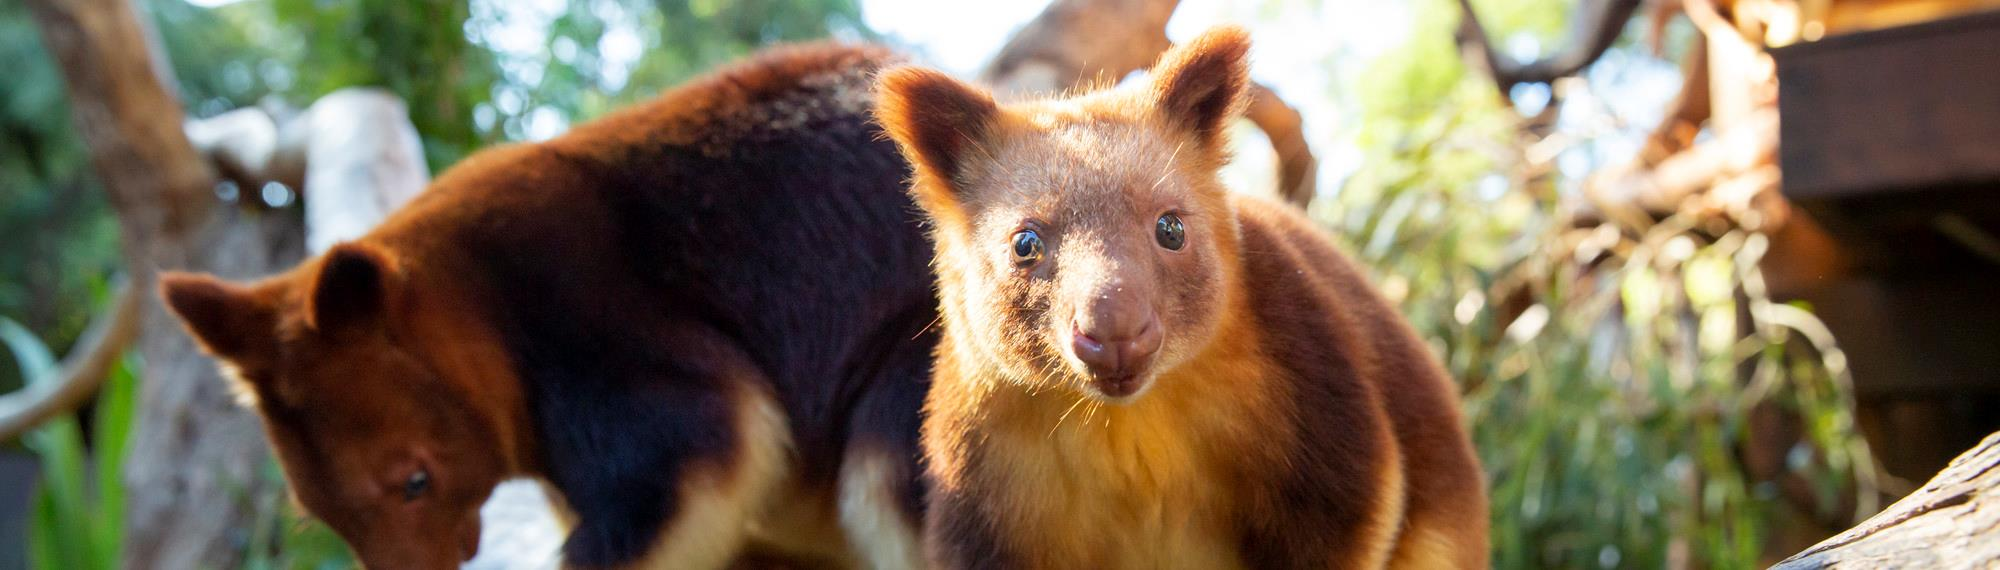 Tree kangaroo staring directly into camera with another tree kangaroo in the background perching on a branch